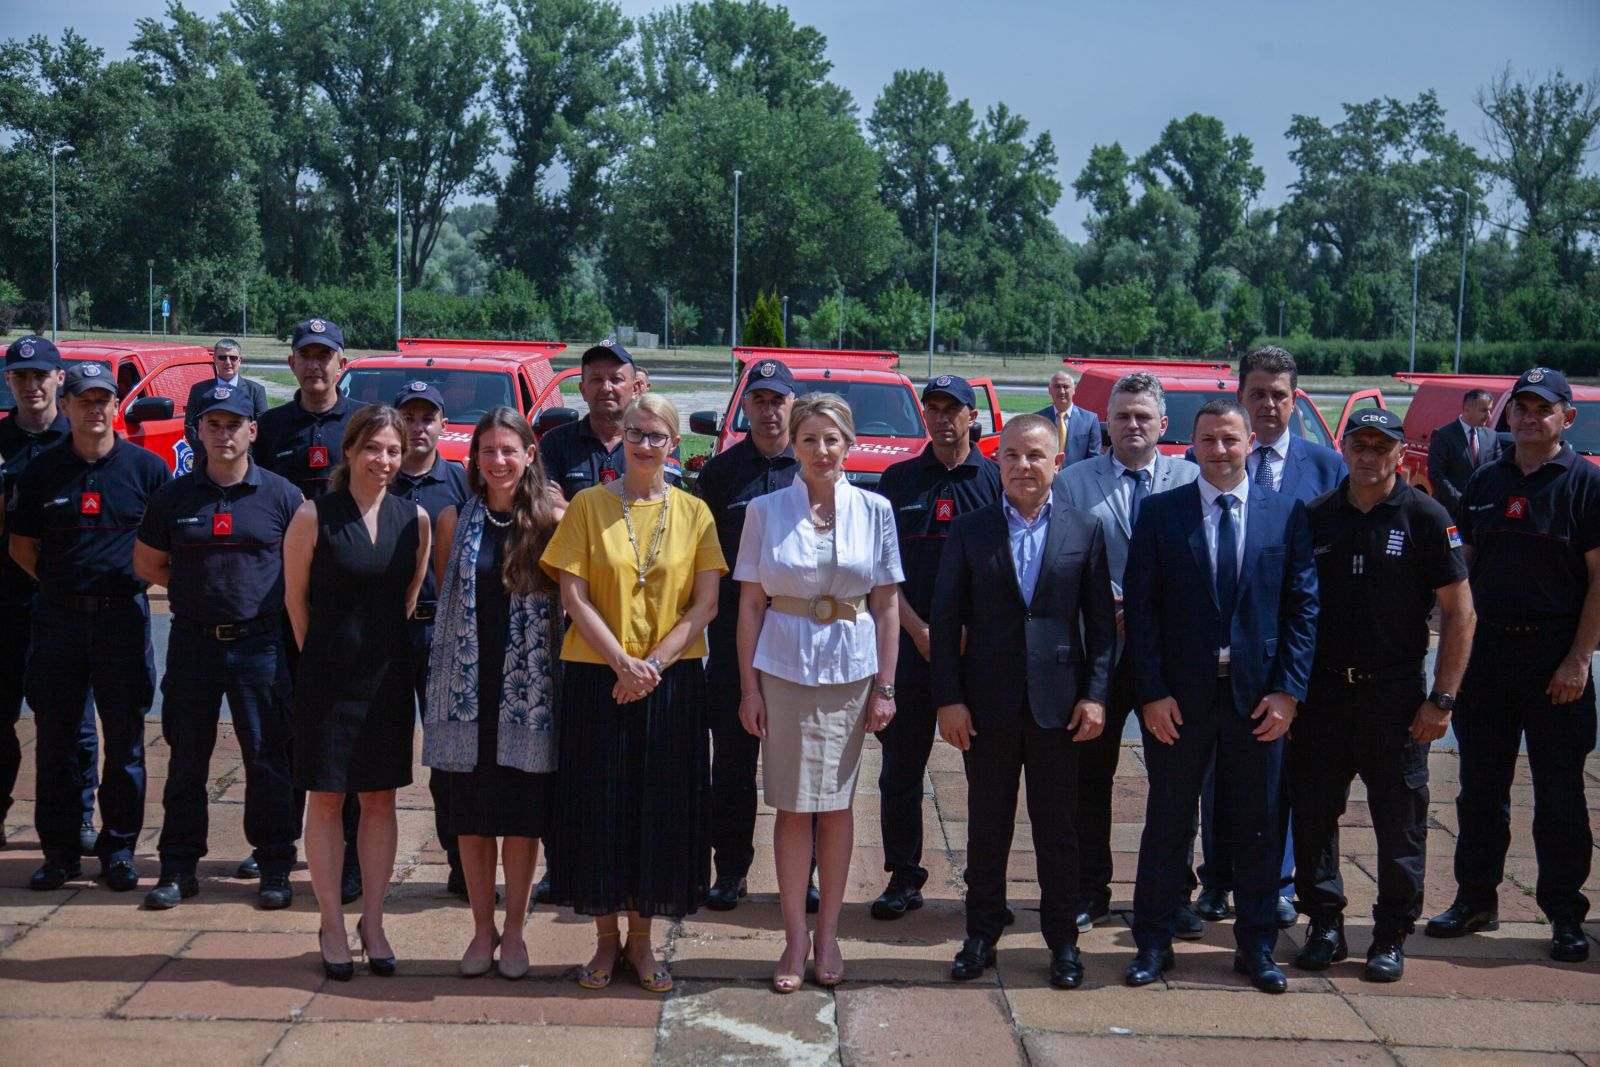 EU provided 27 forest fire-fighting vehicles